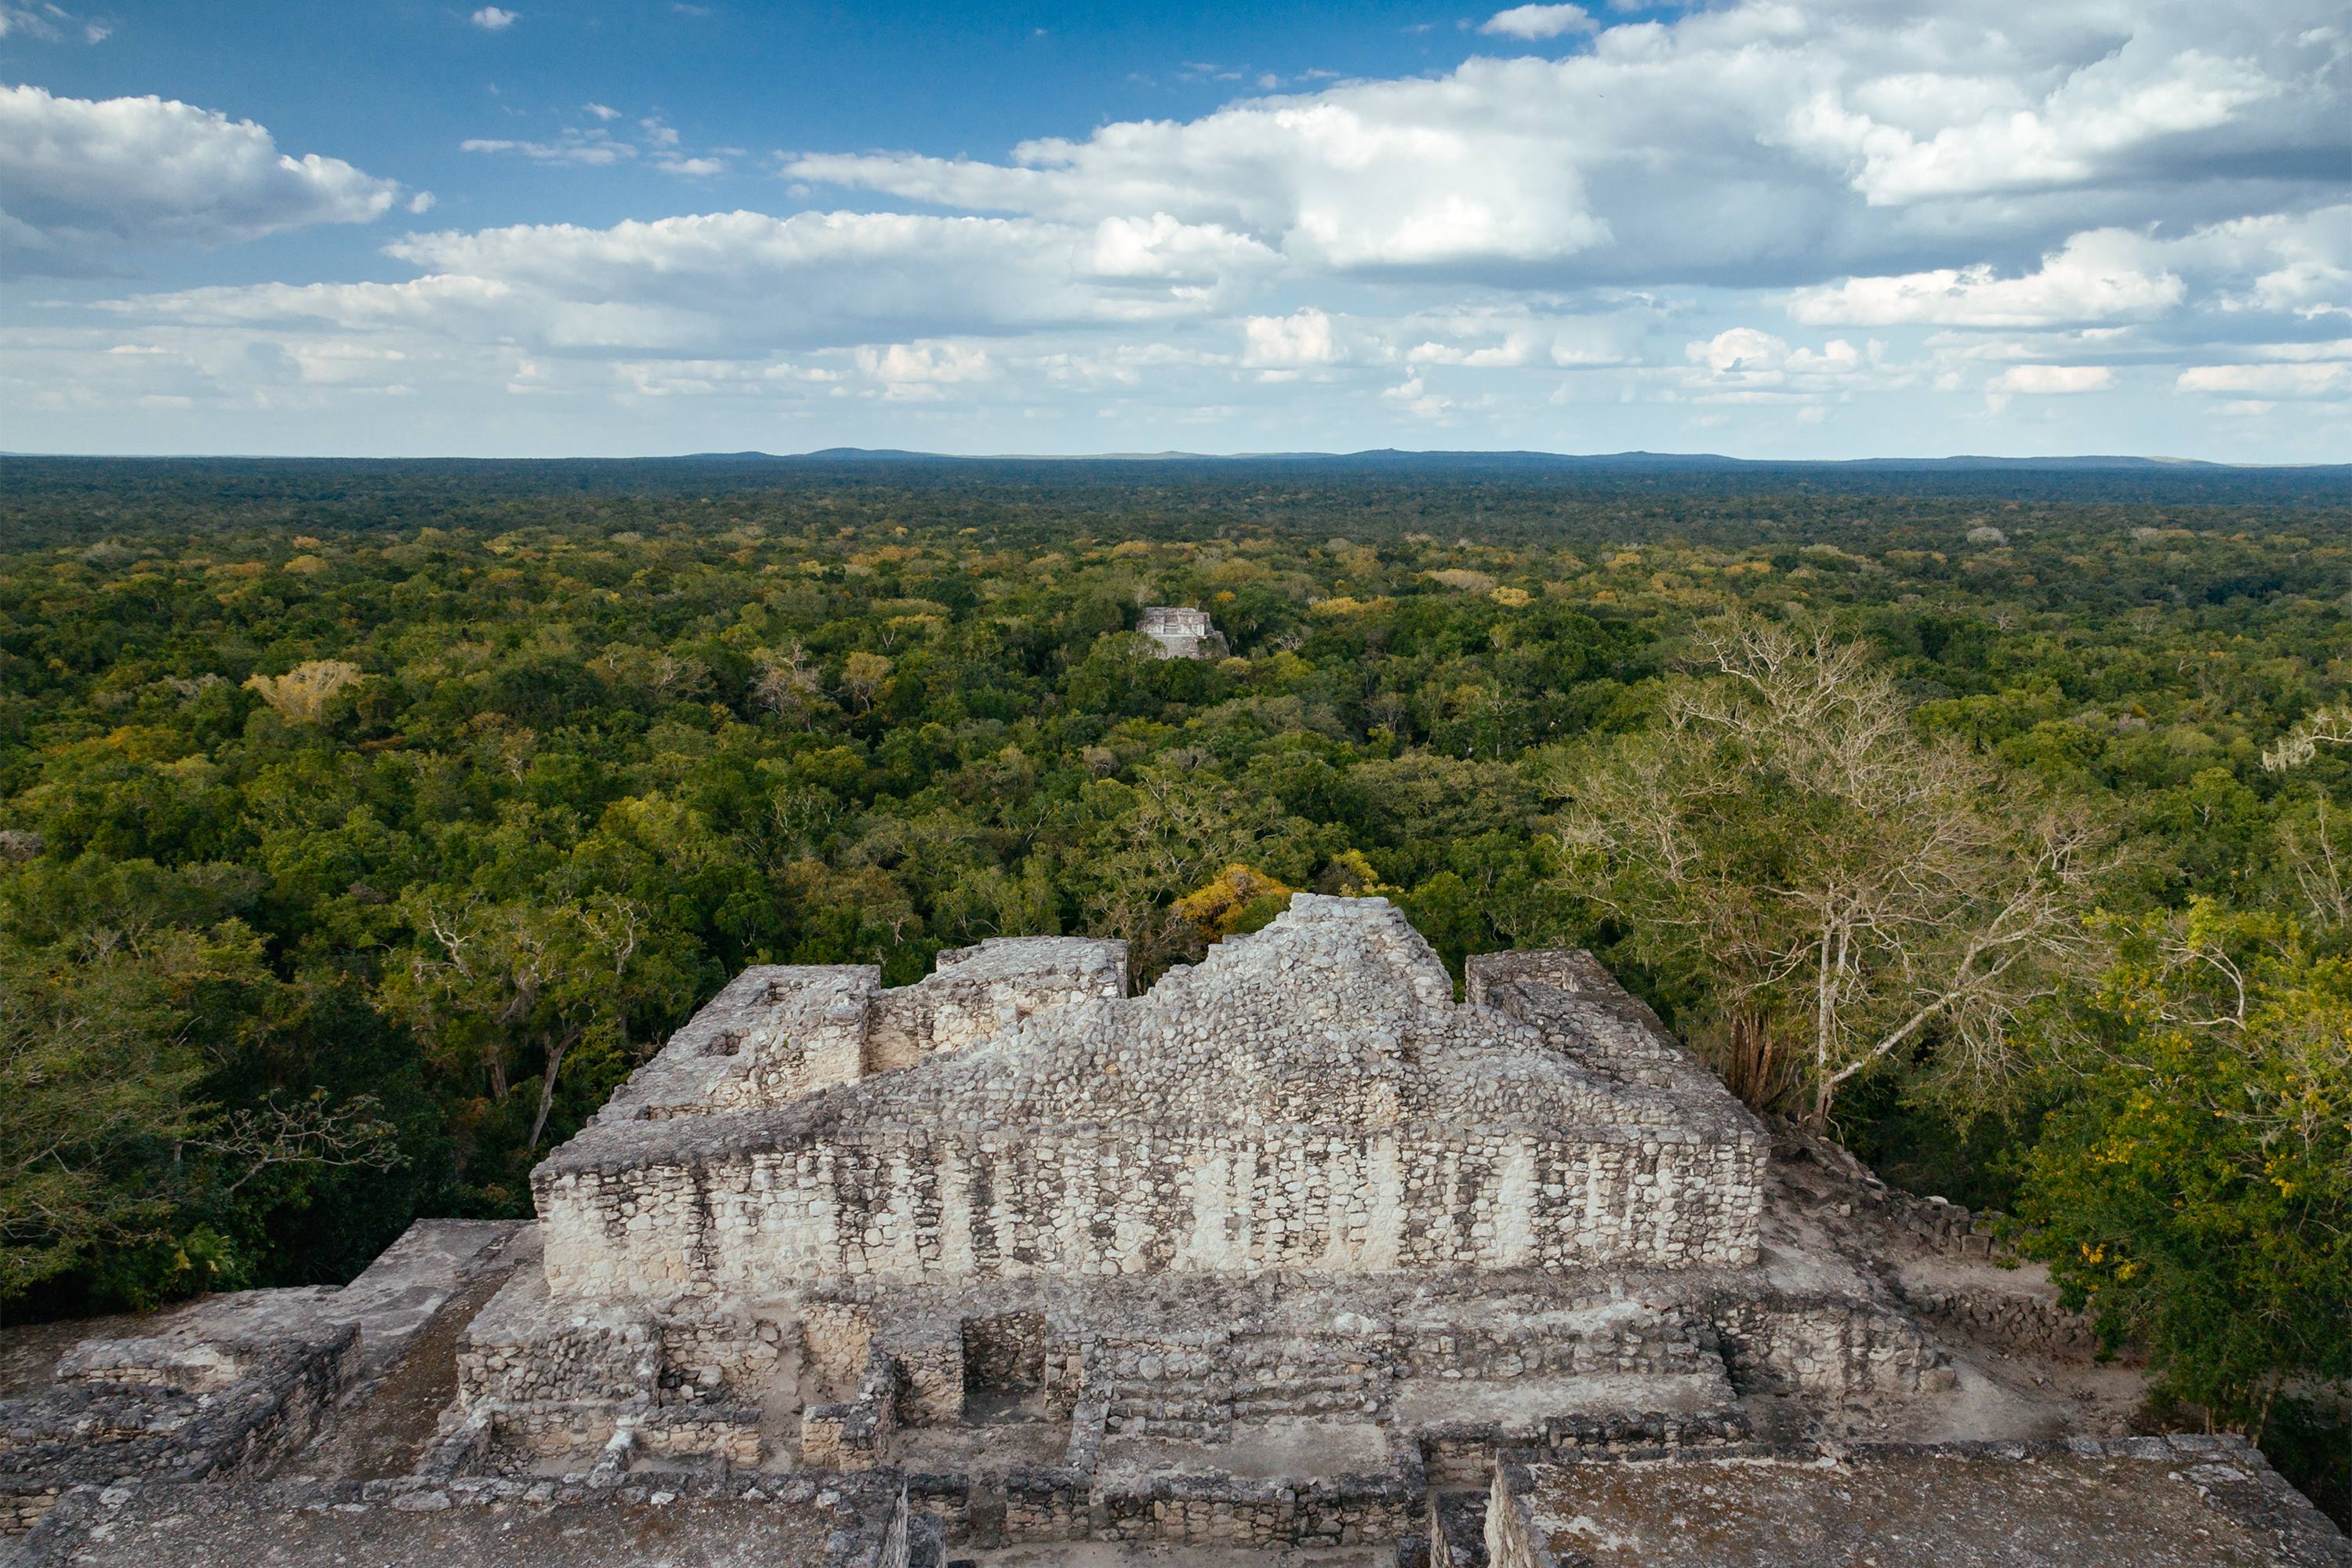 Calakmul Reserve in Mexico